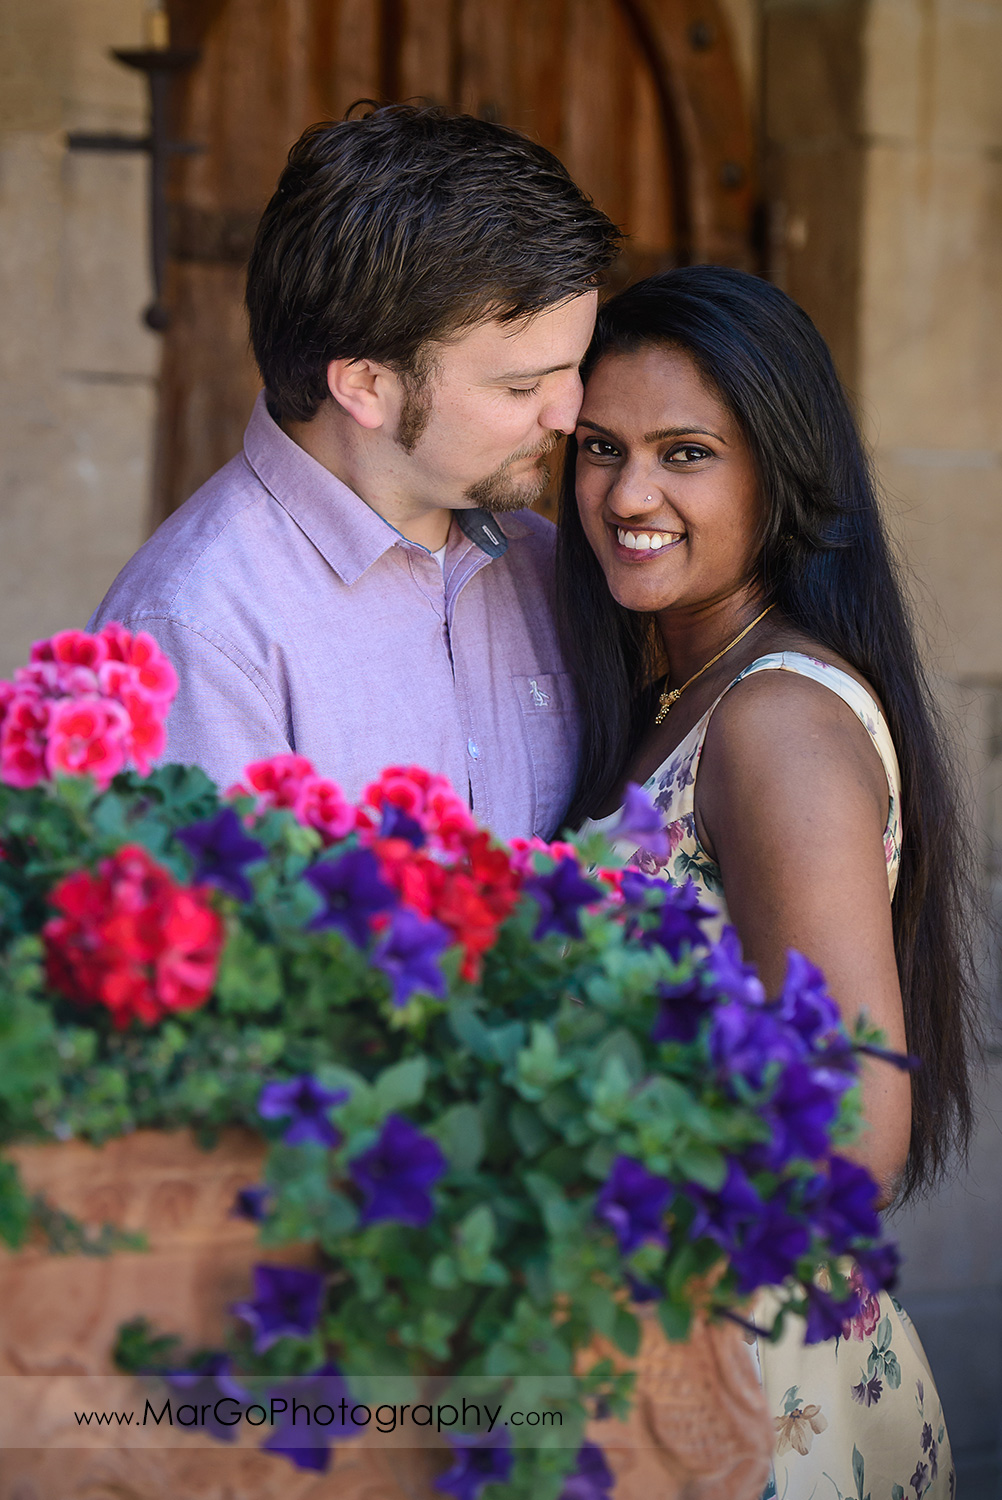 portrait of man in pink shirt looking at Indian woman in flower dress looking into camera during engagement session at Castello di Amorosa in Calistoga